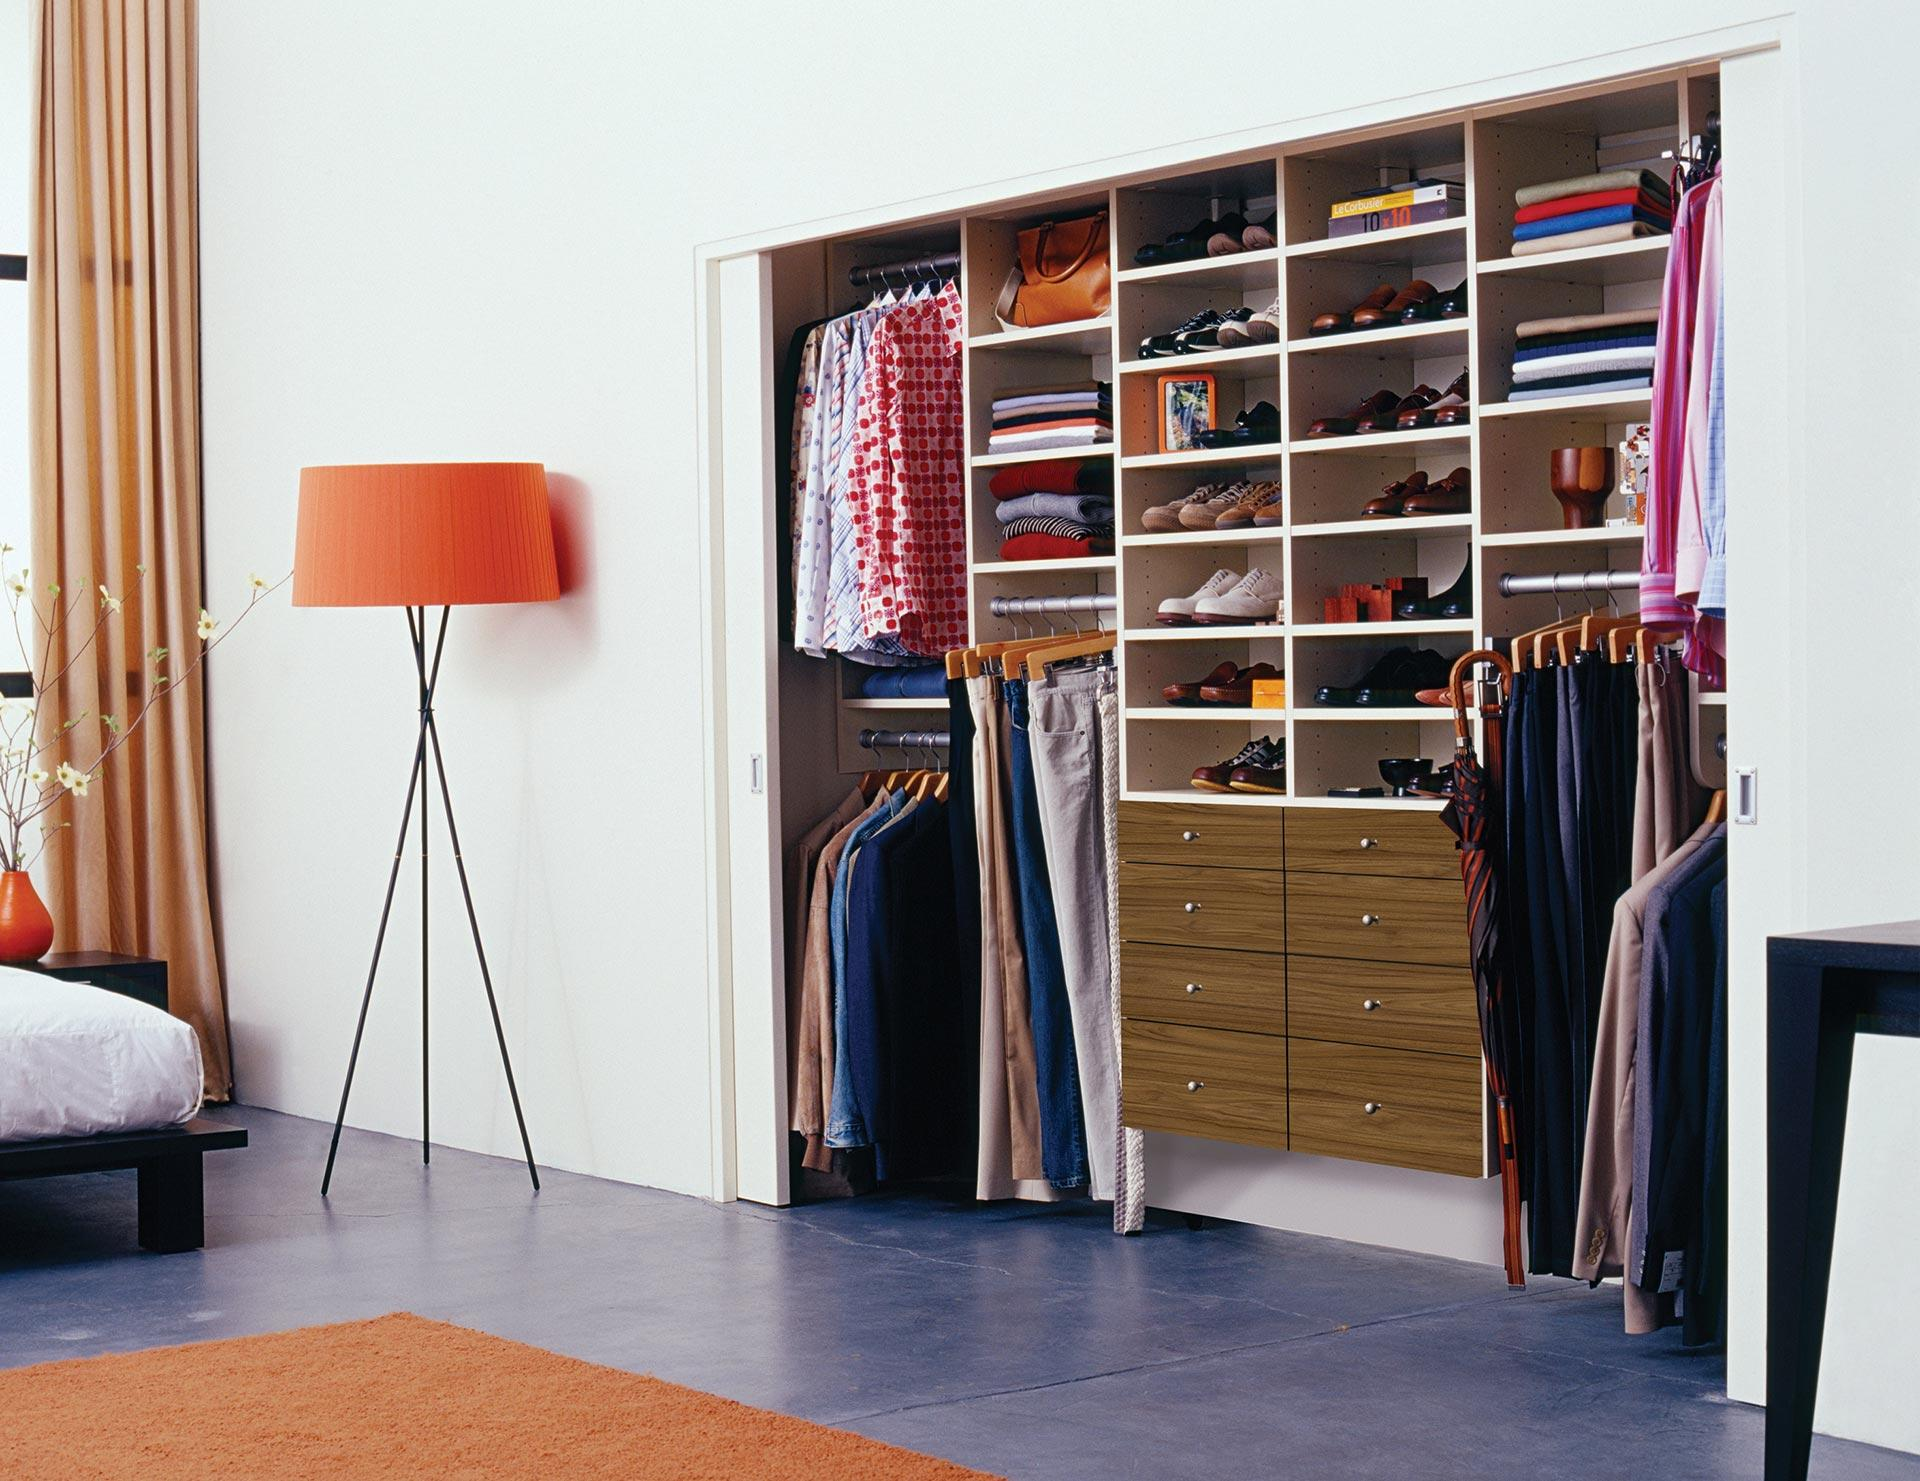 Reach In Closet Organization Ideas Part - 25: California Closets - Reach-In Custom Closet